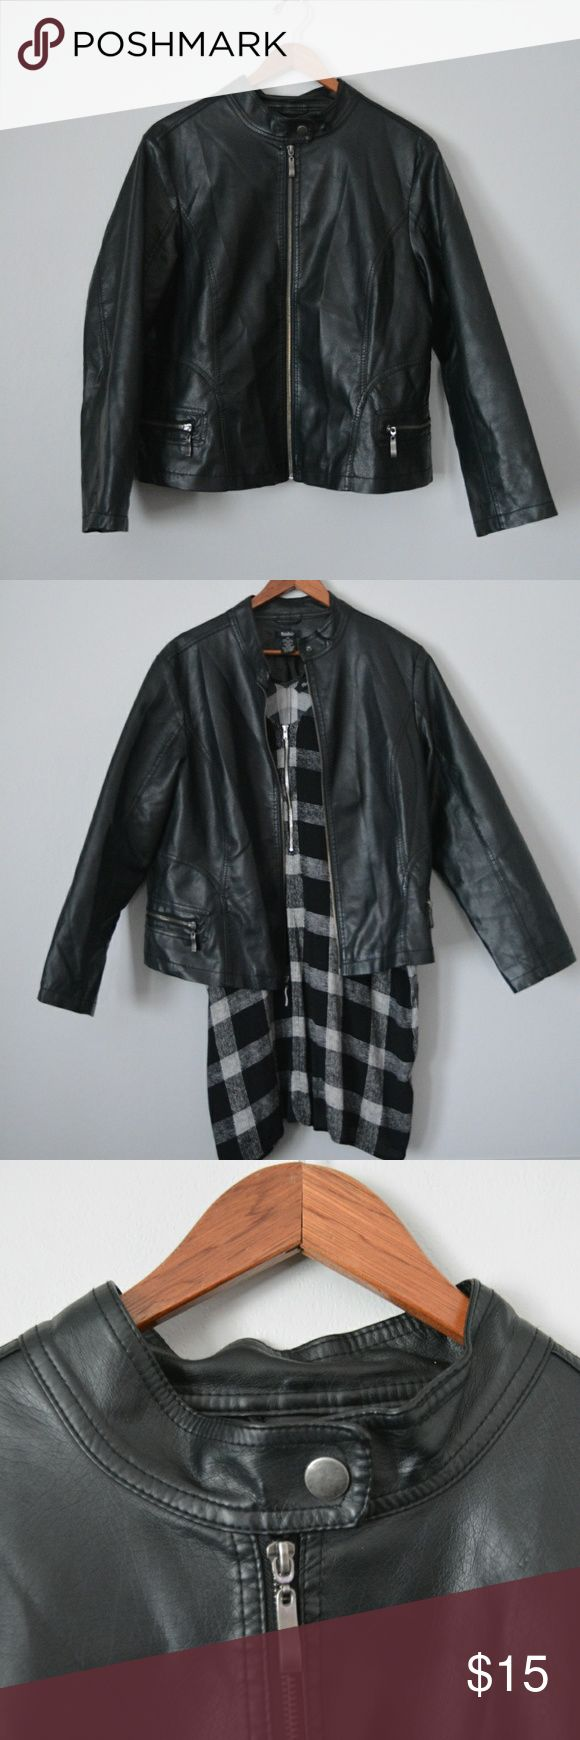 Faux Leather Jacket Plus size black faux leather jacket. Perfect for everyday and night out looks! Slightly cropped. Worn a handful of times, in great condition. Best fits 1X/2X. Manifesto Jackets & Coats